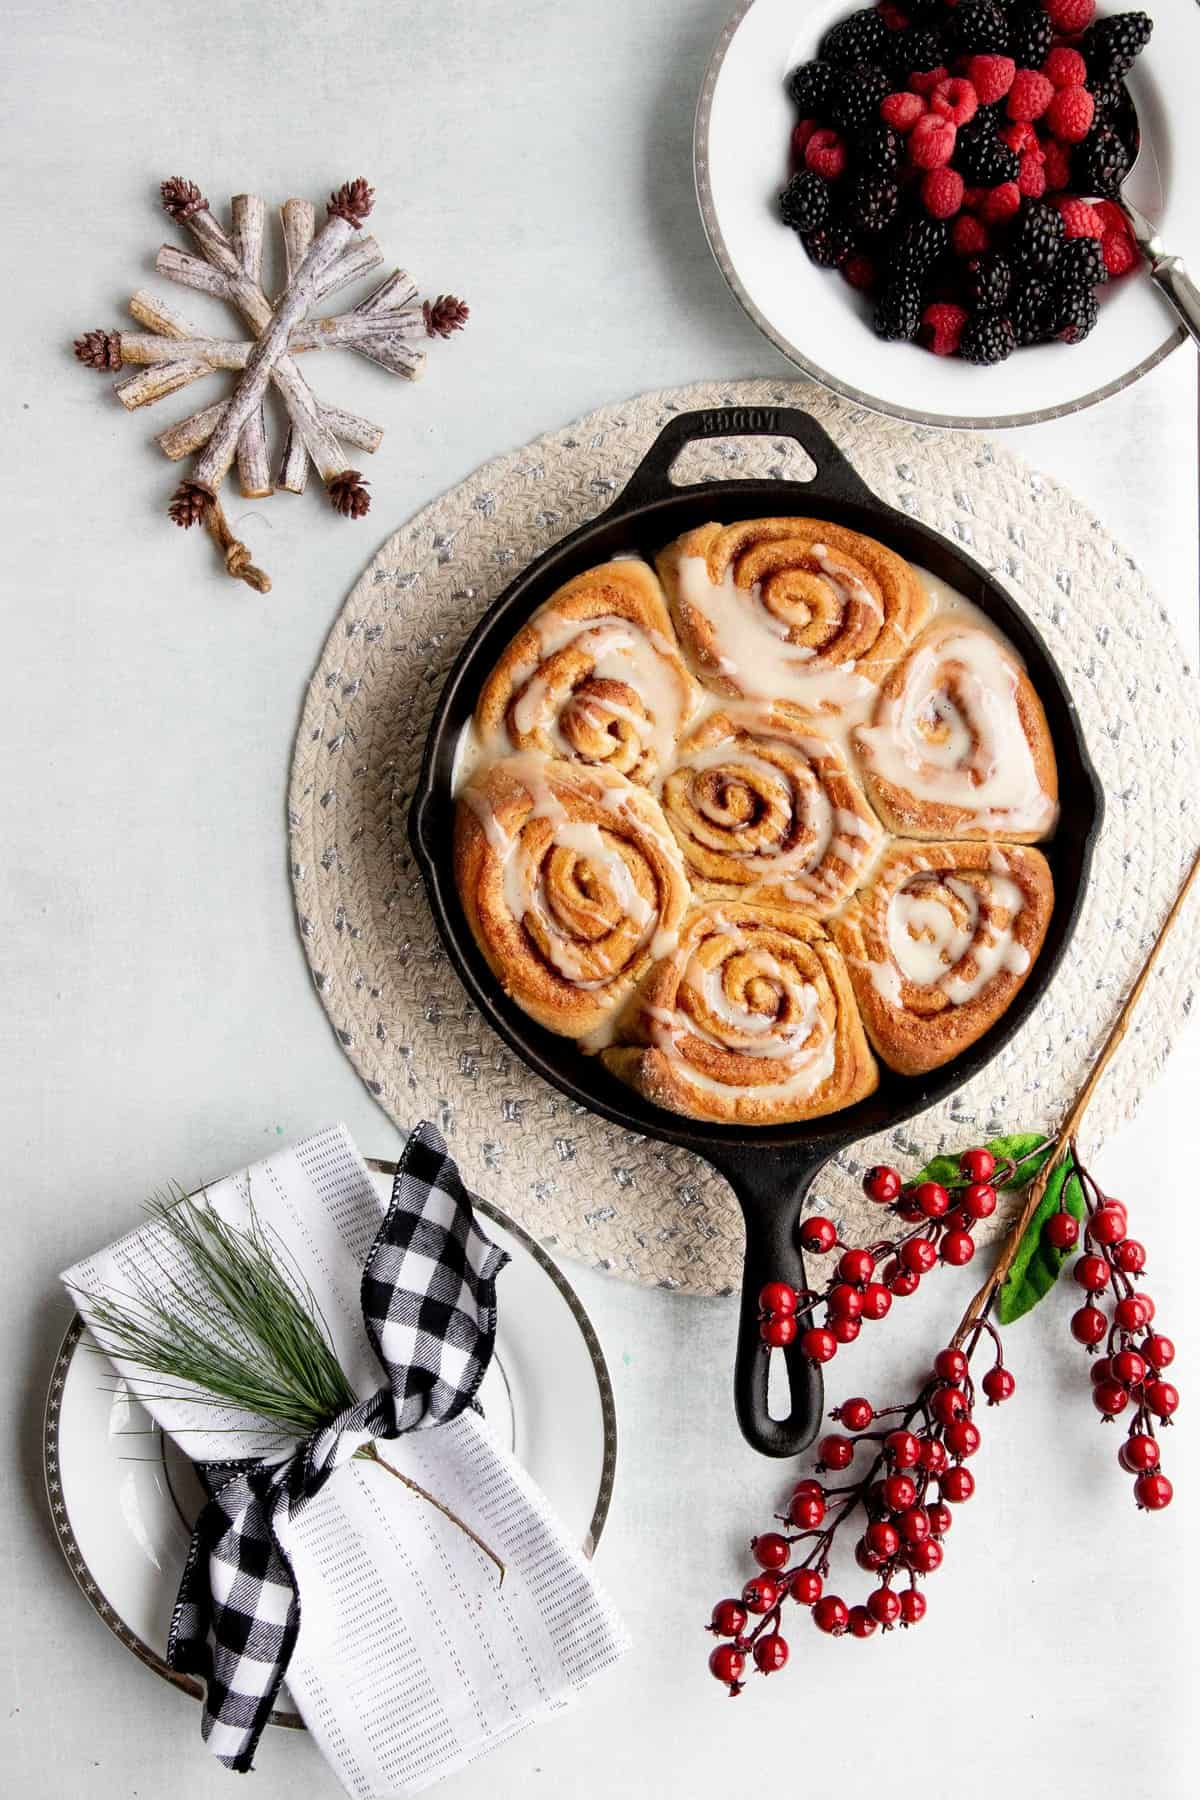 Overhead of a cast iron skillet filled with make-ahead vegan cinnamon rolls drizzled with icing.